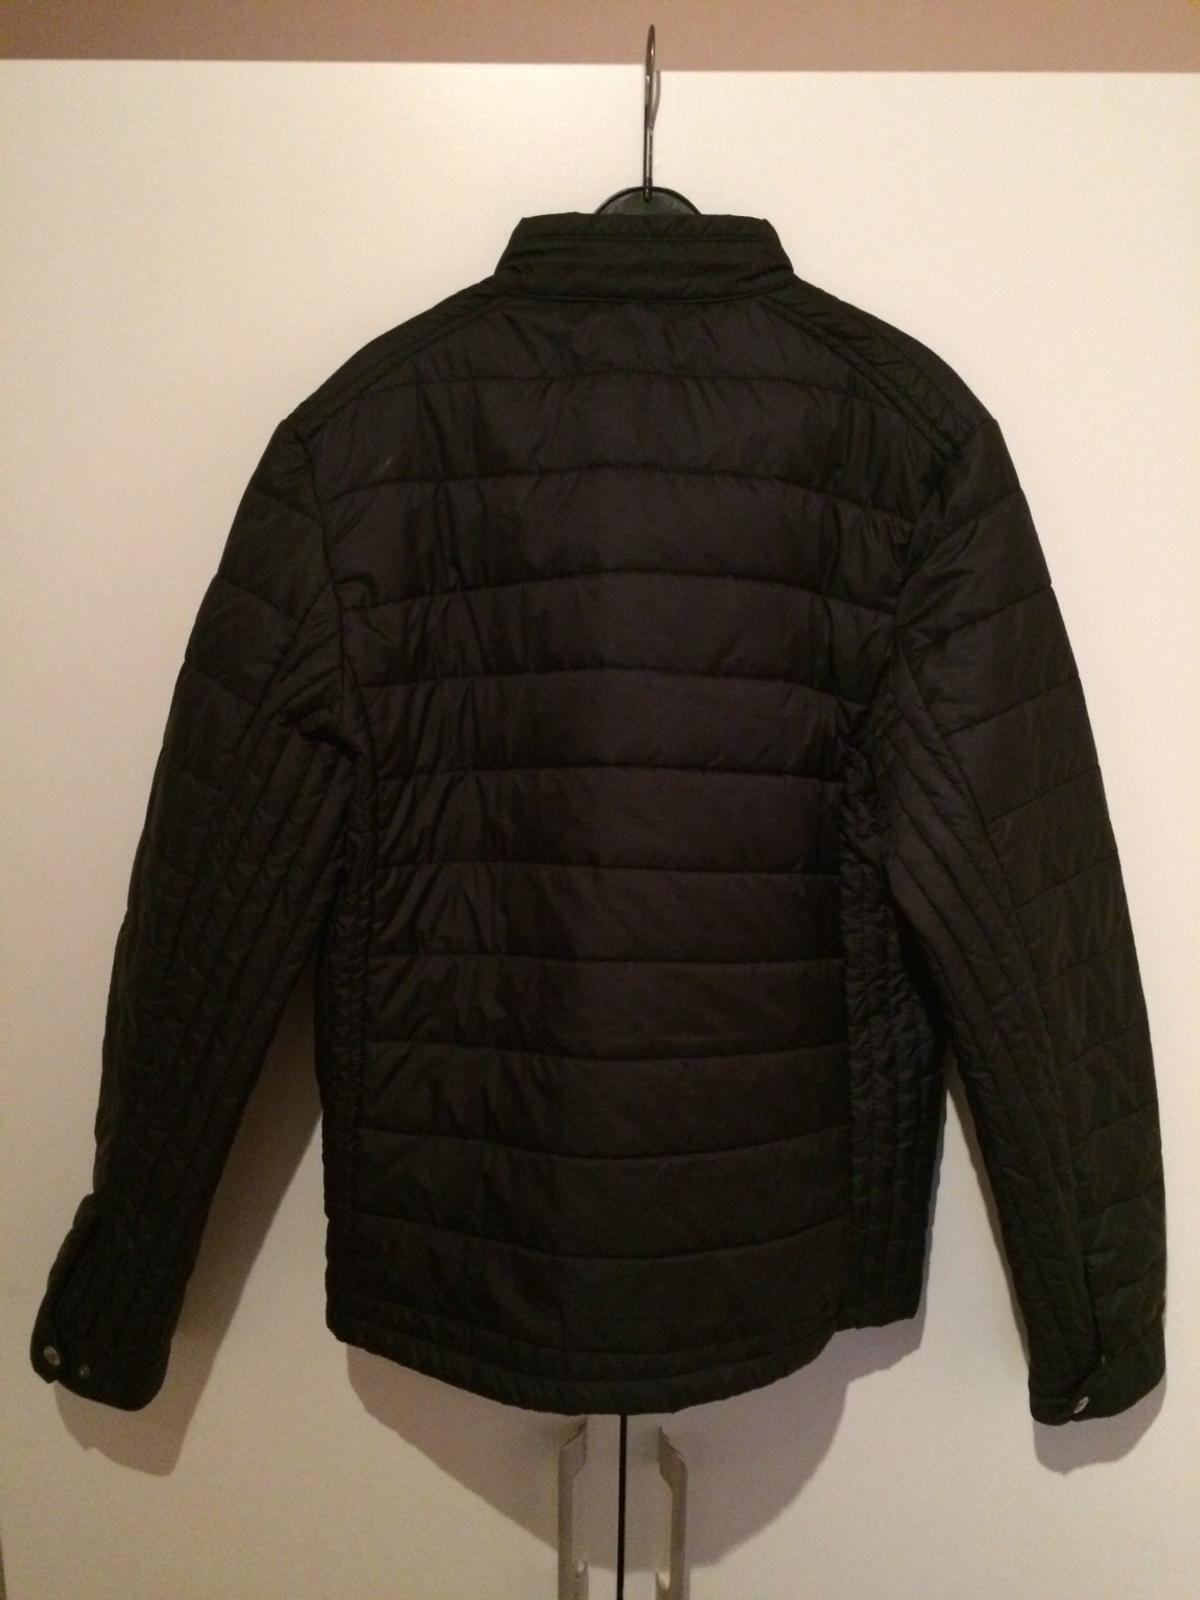 56332 00 Moncler €190 In Dieblich For Sale Herrenjacke Rj534LqcA